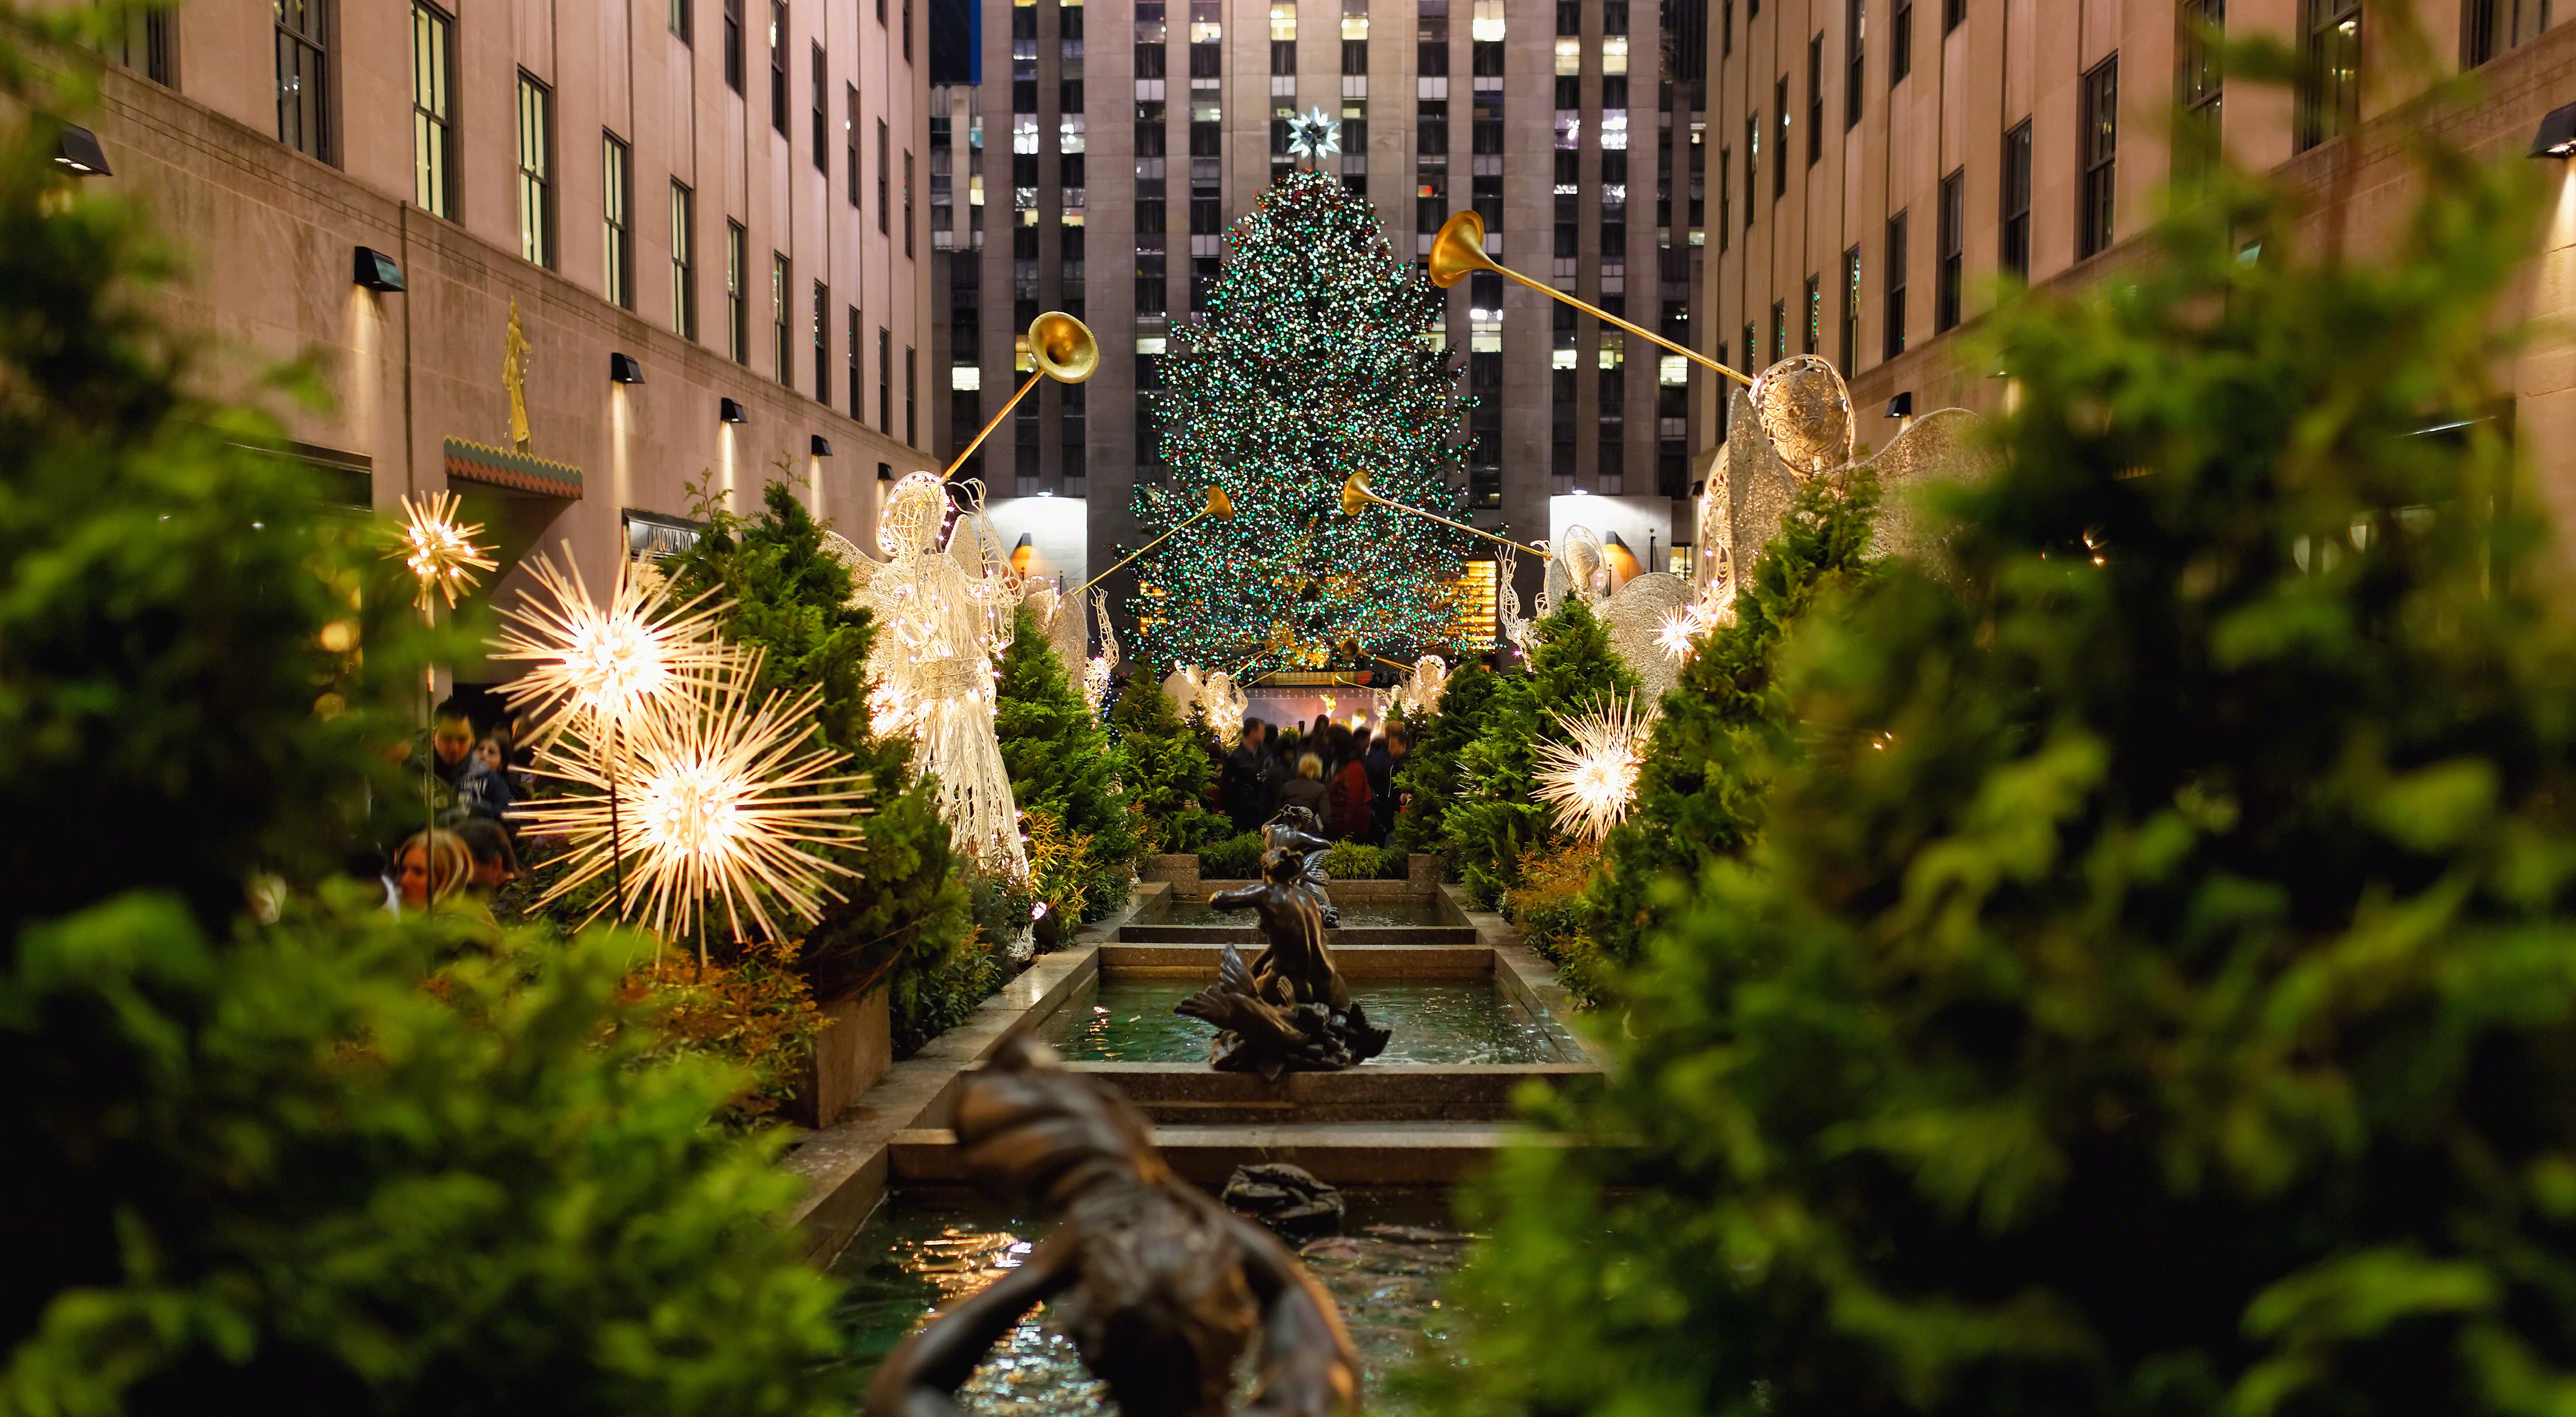 Rockefeller Center Christmas Tree at Night, New York City.